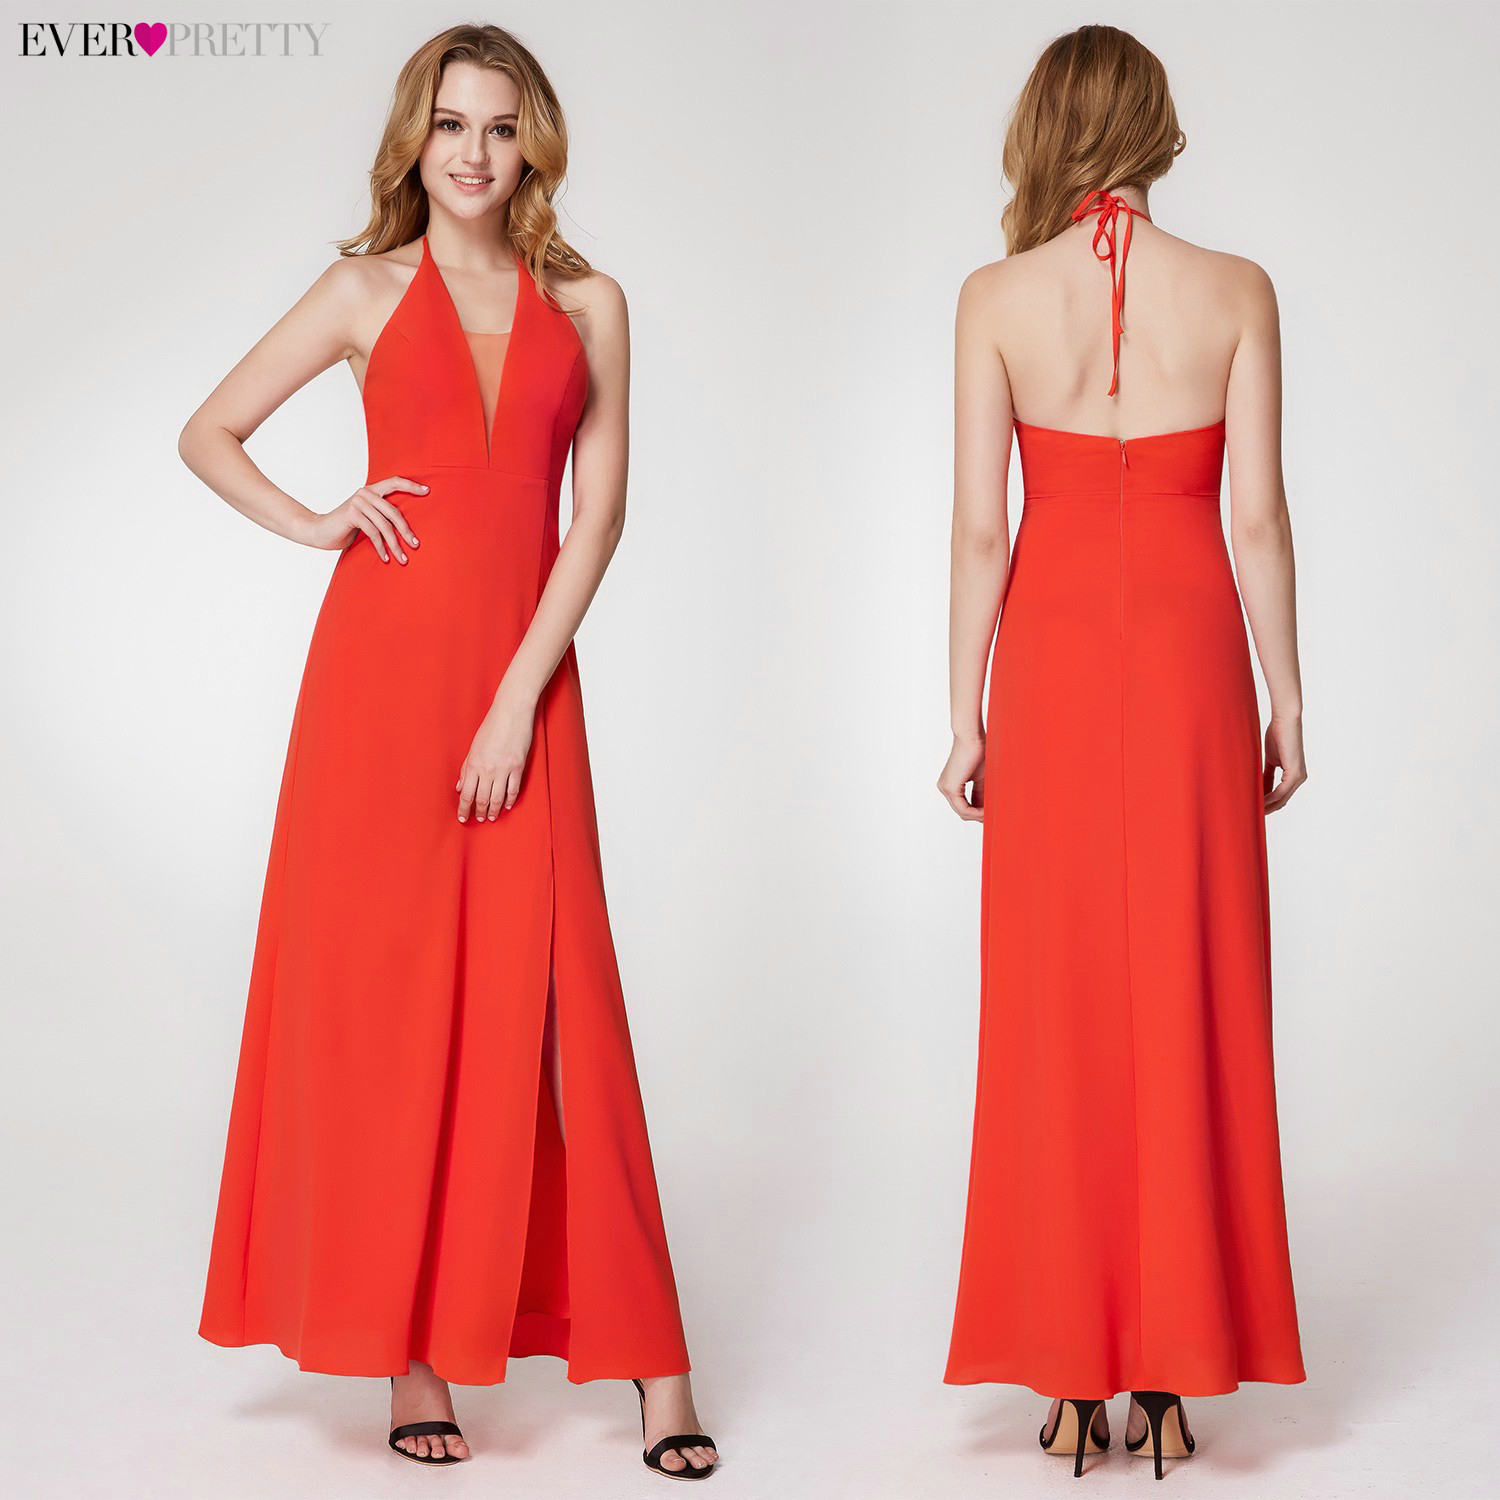 Image 5 - Simple Christmas Prom Dresses Ever Pretty A Line One Shoulder Sleeveless Elegant Chiffon Party Gowns Vestido Largo Fiesta 2020Prom Dresses   -